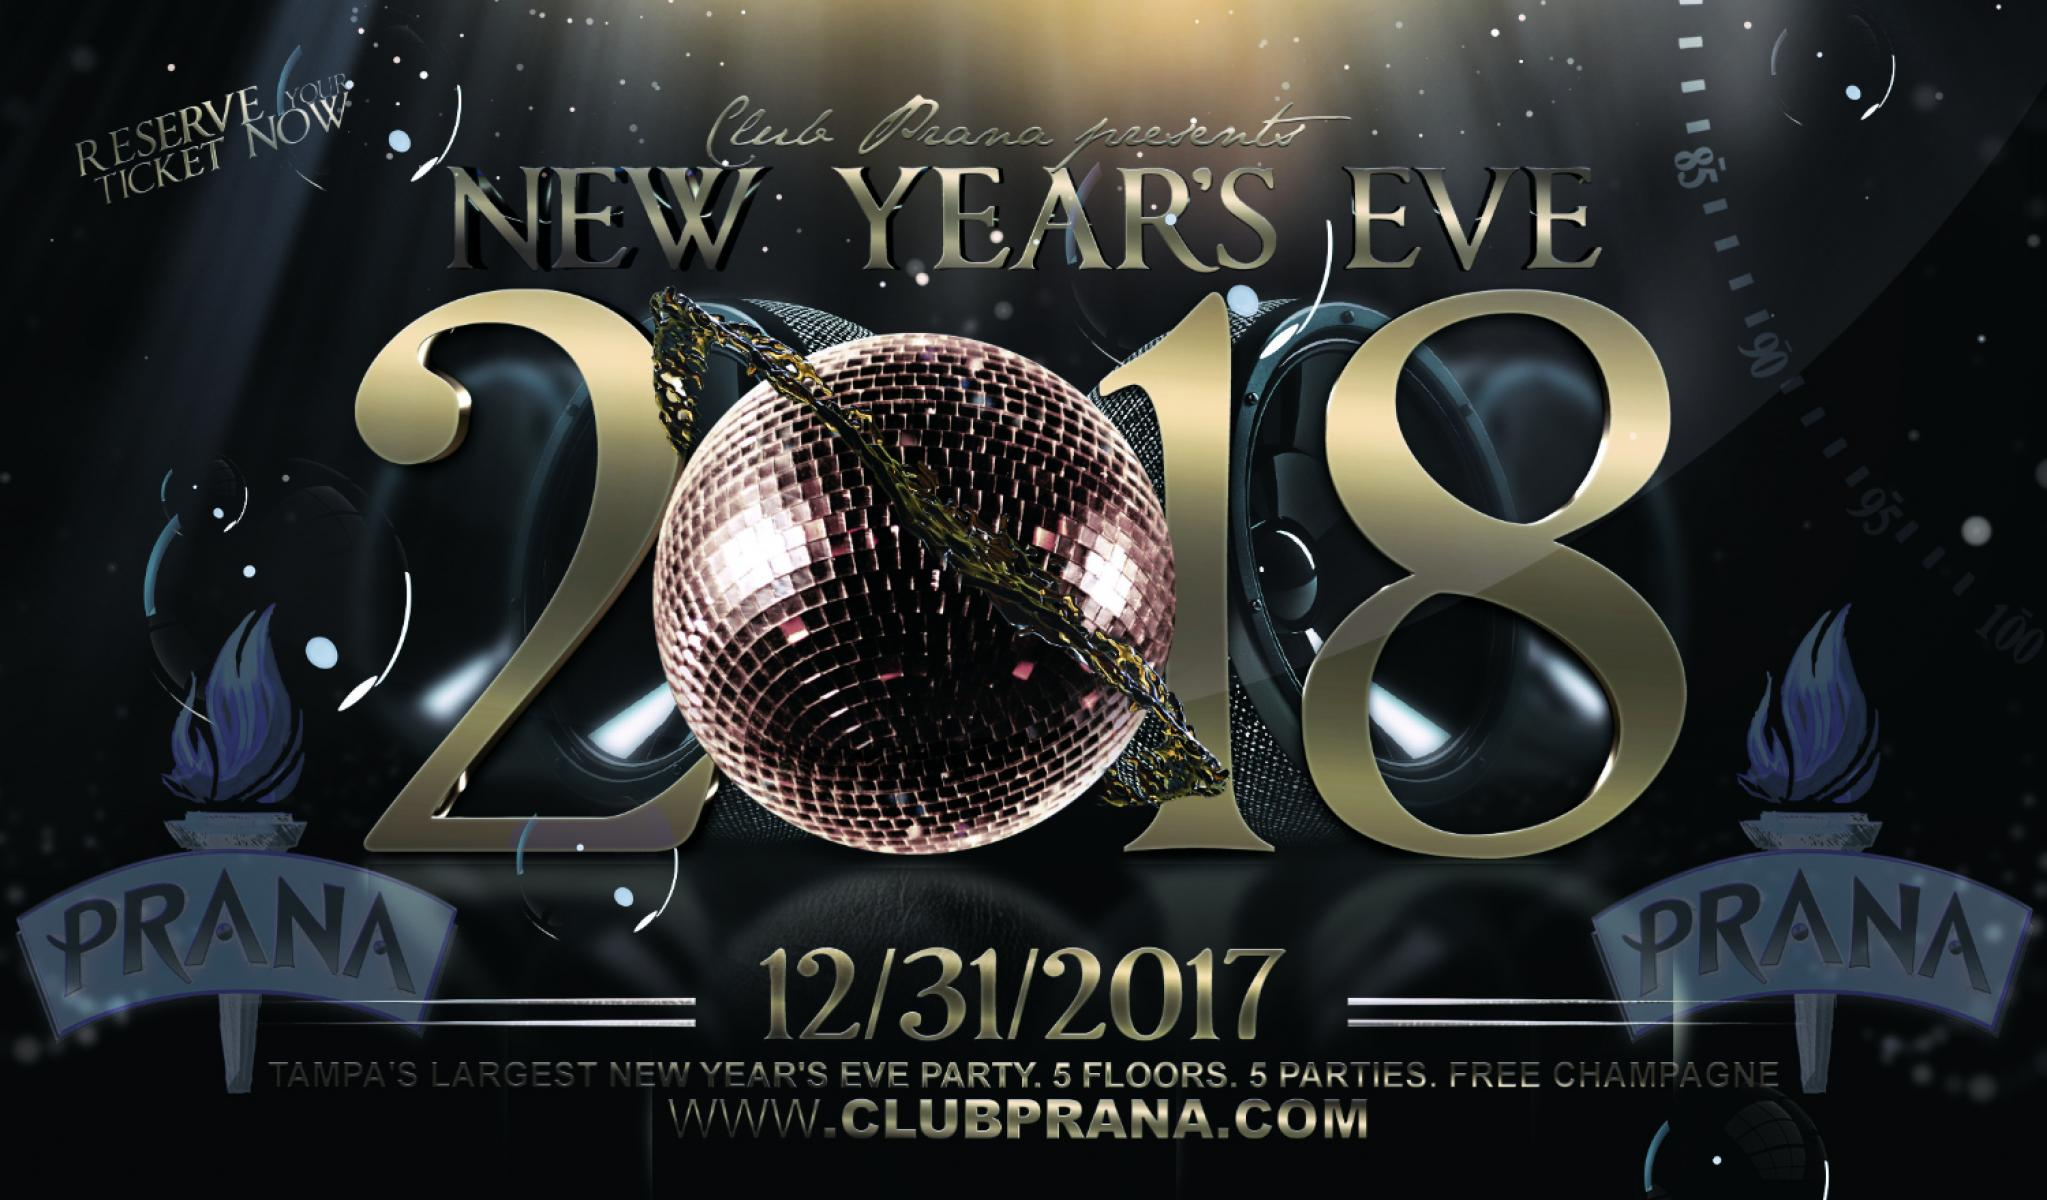 new year s eve tampa 2021 events in tampa florida new year s eve tampa 2021 events in